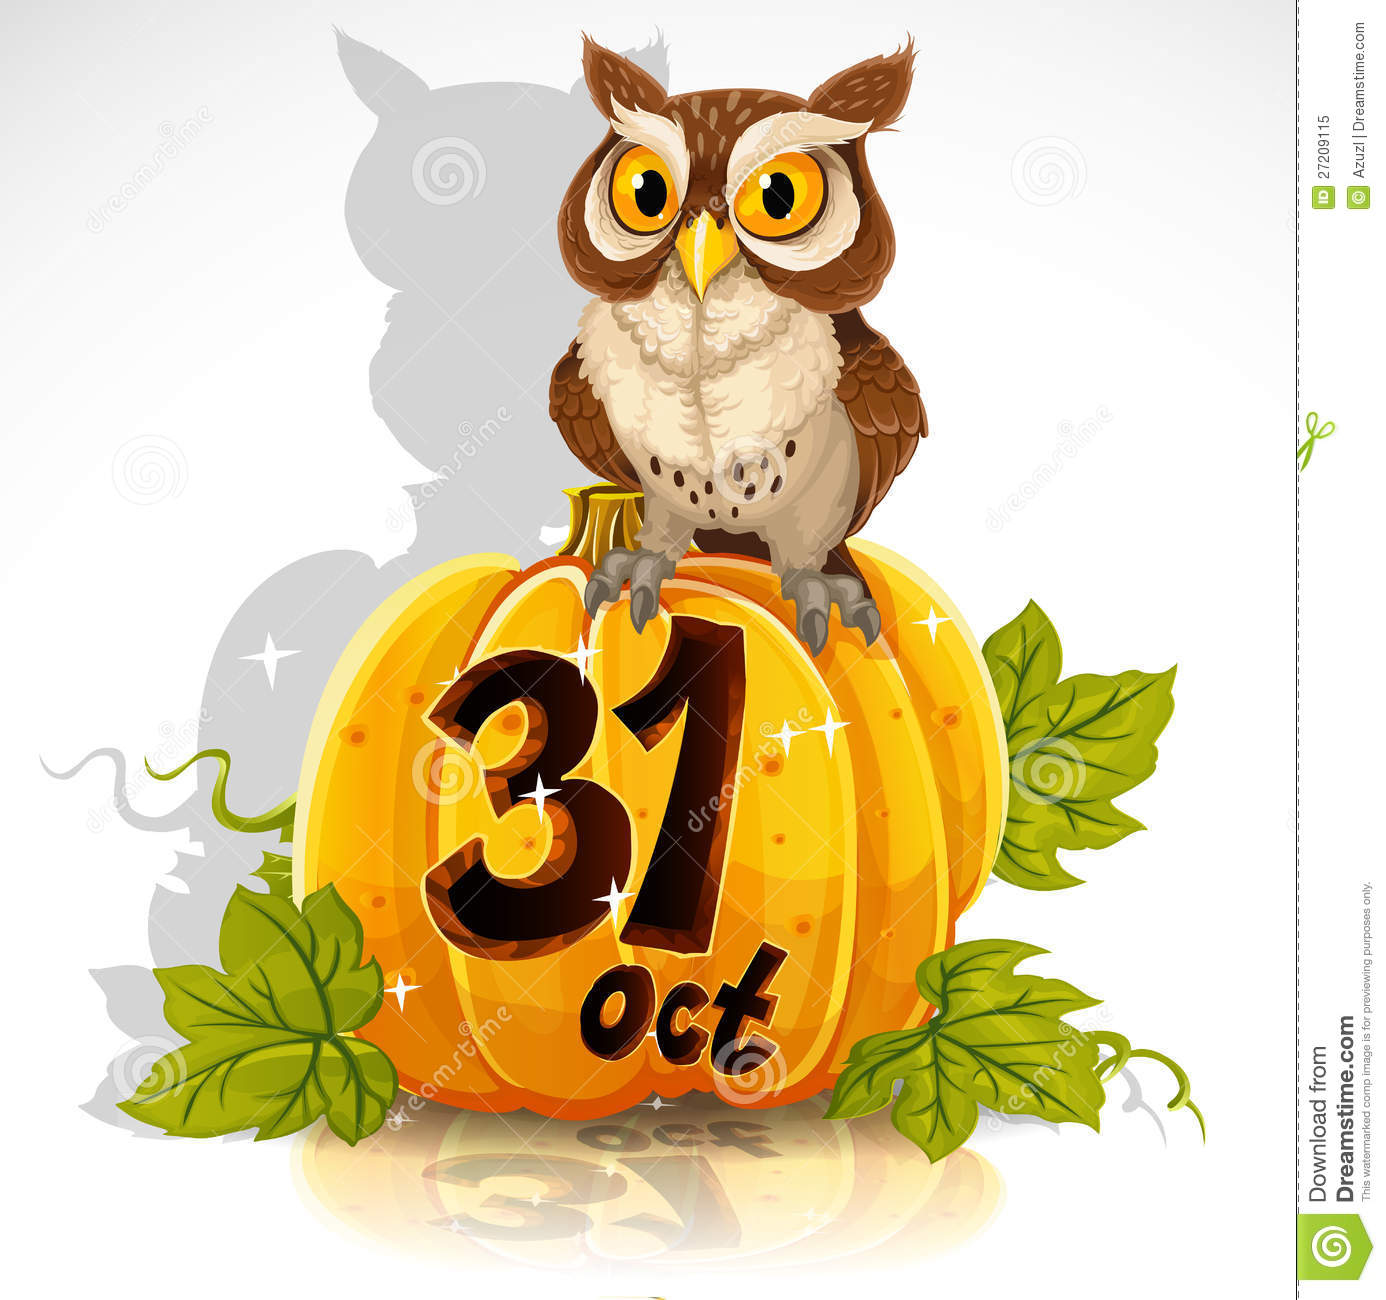 Wise Owl Sit On A Pumpkin  Halloween Party Royalty Free - October 31 Halloween